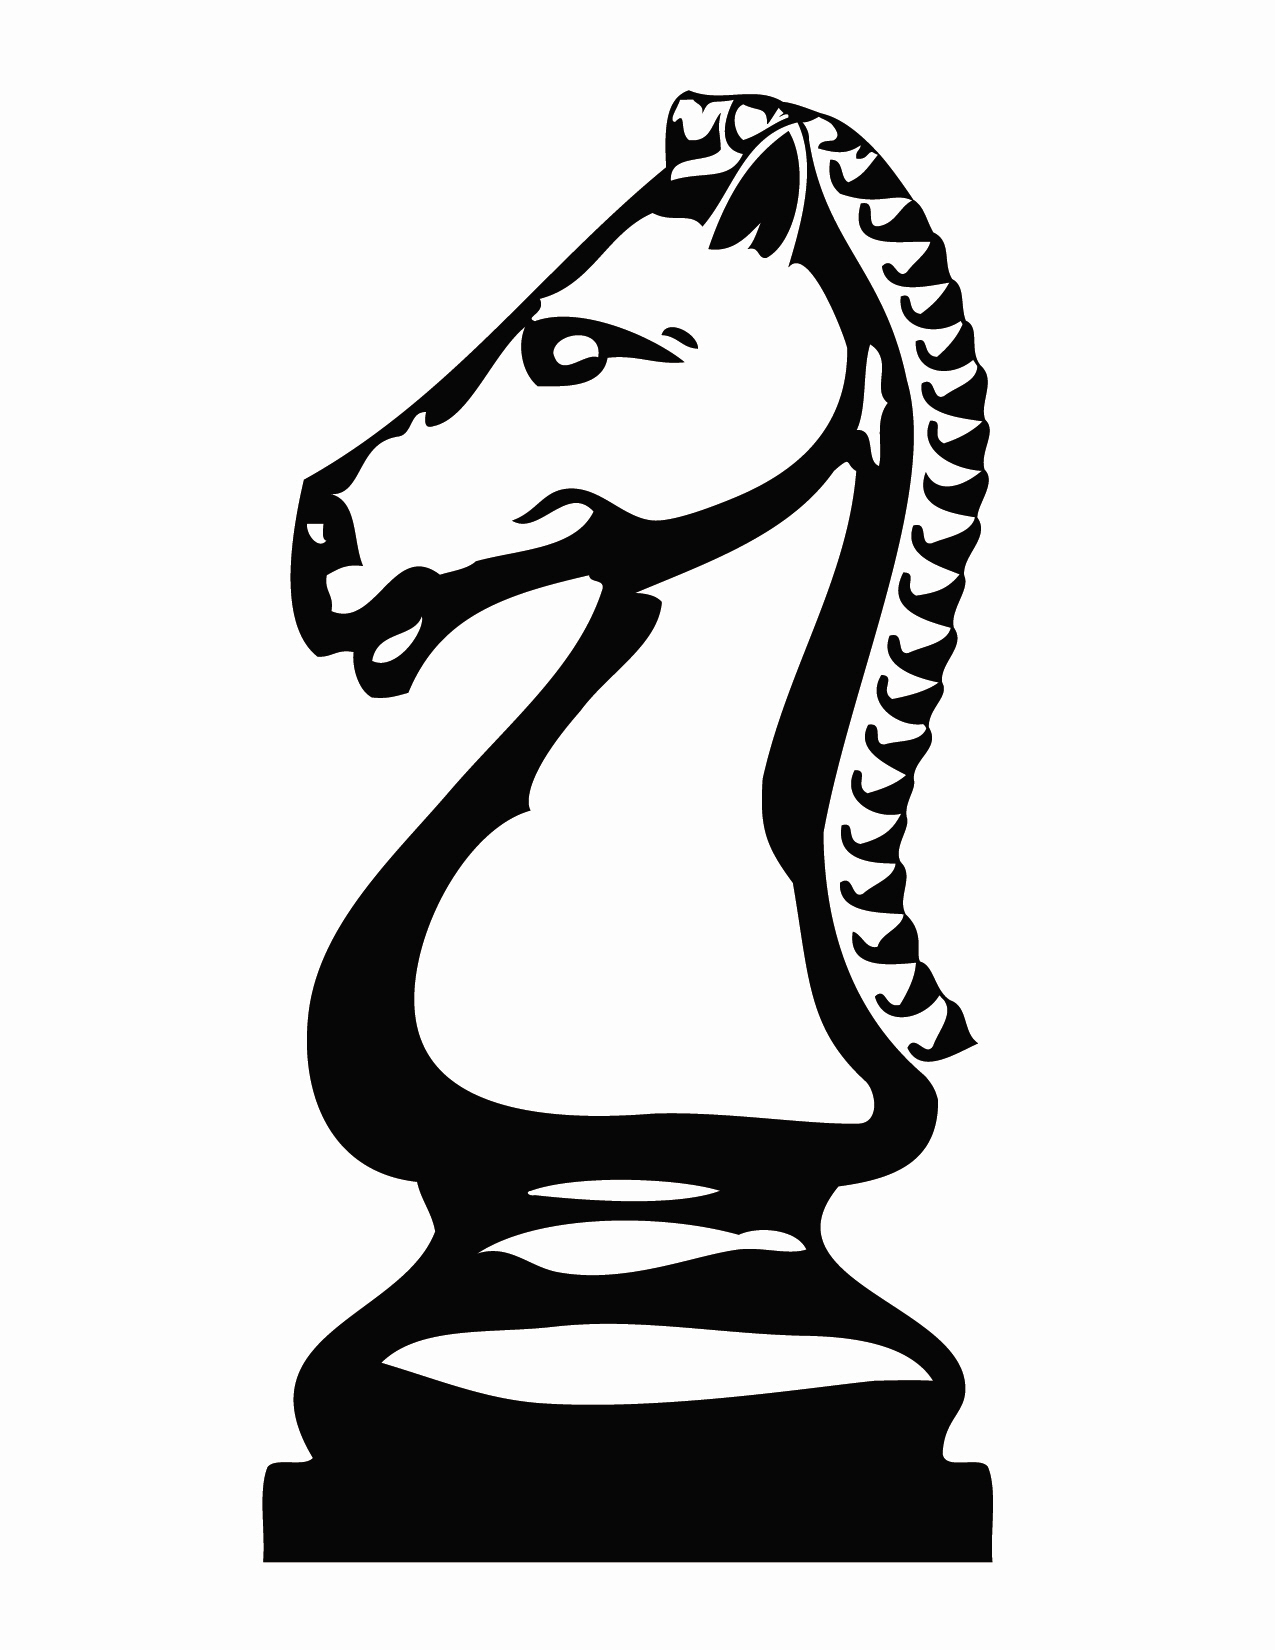 Chess clipart white knight, Chess white knight Transparent.